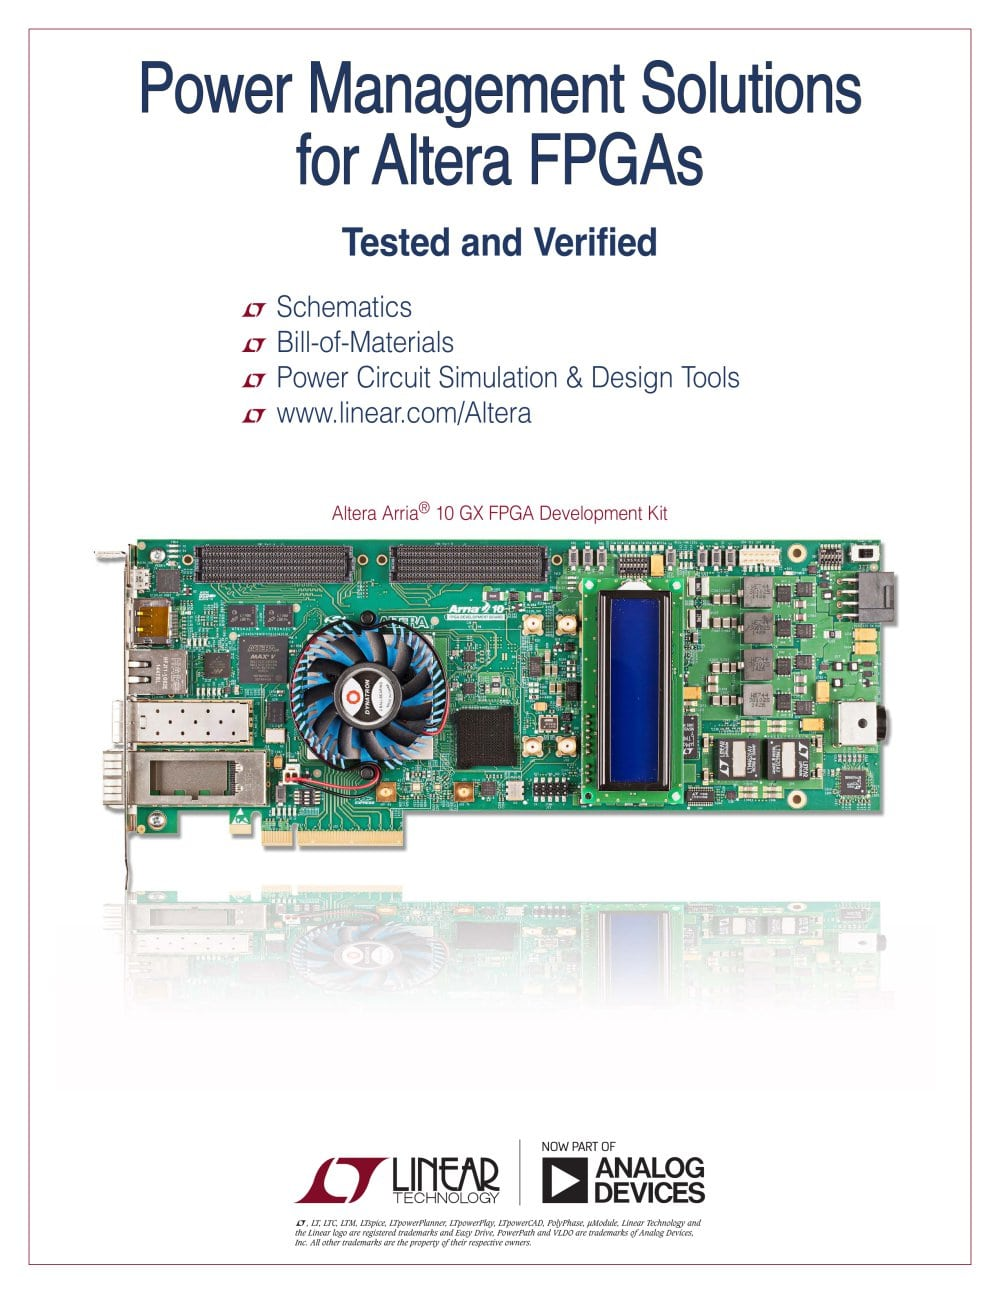 Power Management Solutions For Altera Fpgas Linear Technology Synchronous Buckboost Led Driver Controller 1 16 Pages